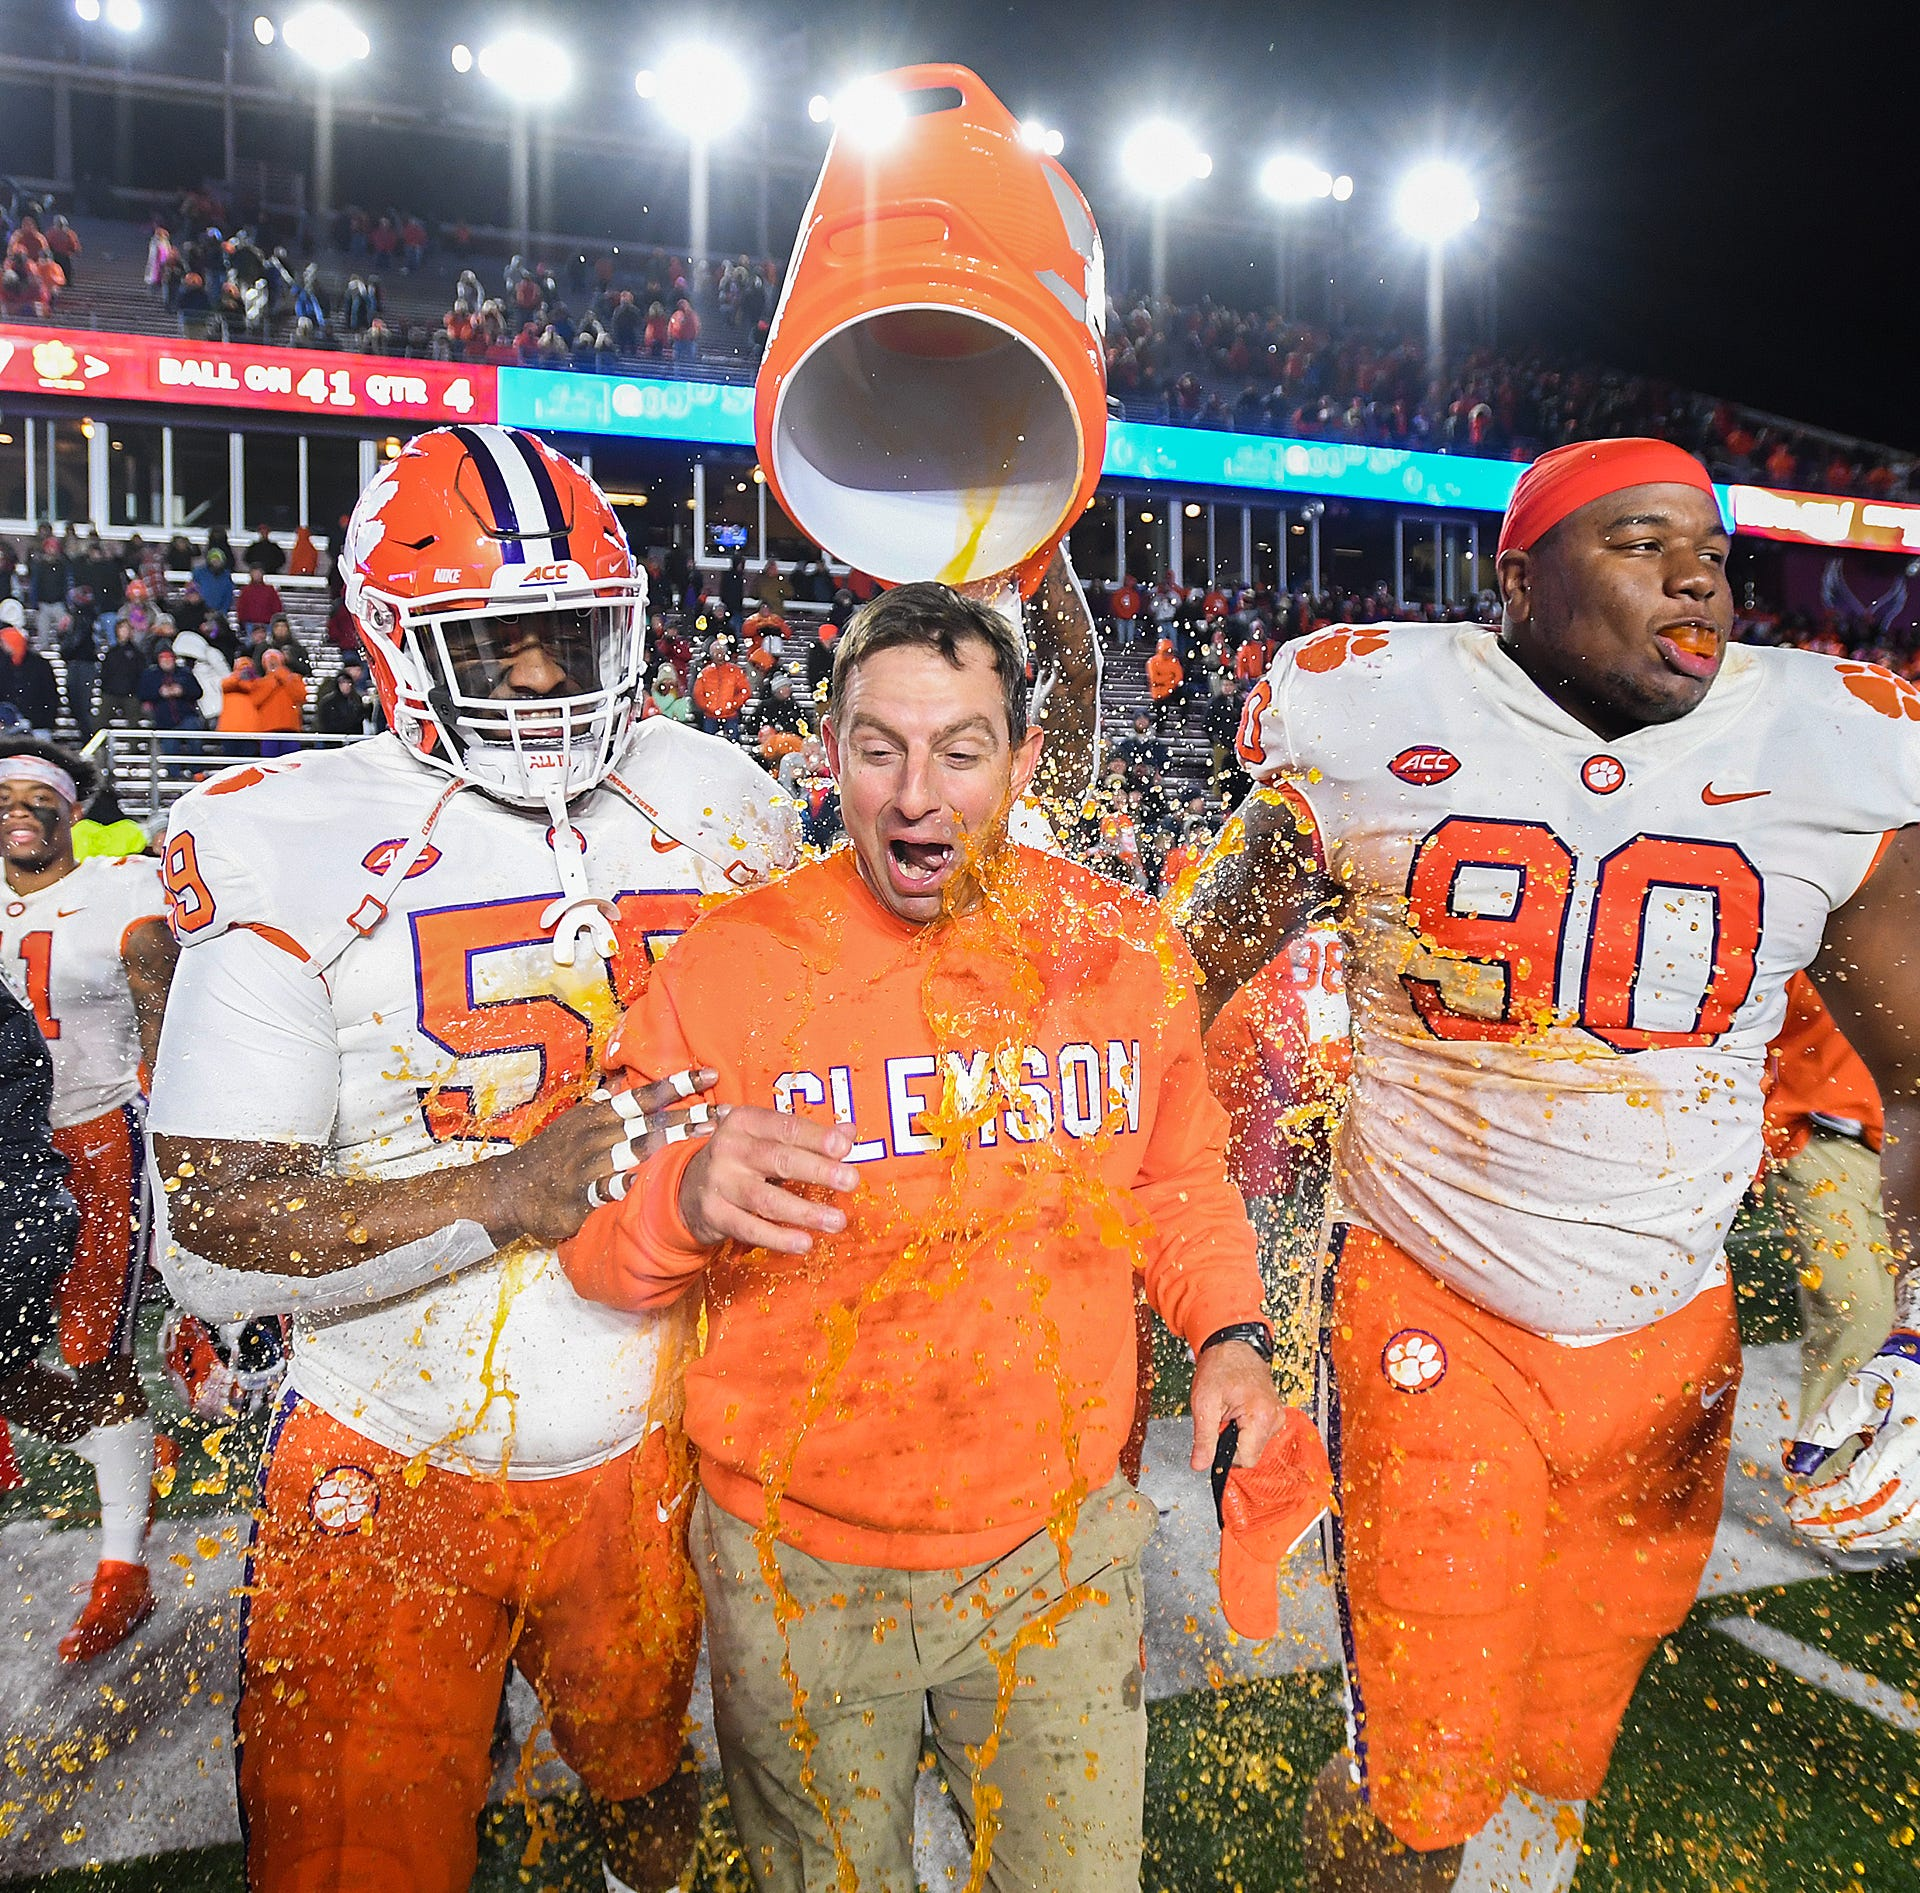 Defense steals spotlight as Clemson football wins another Atlantic Division title